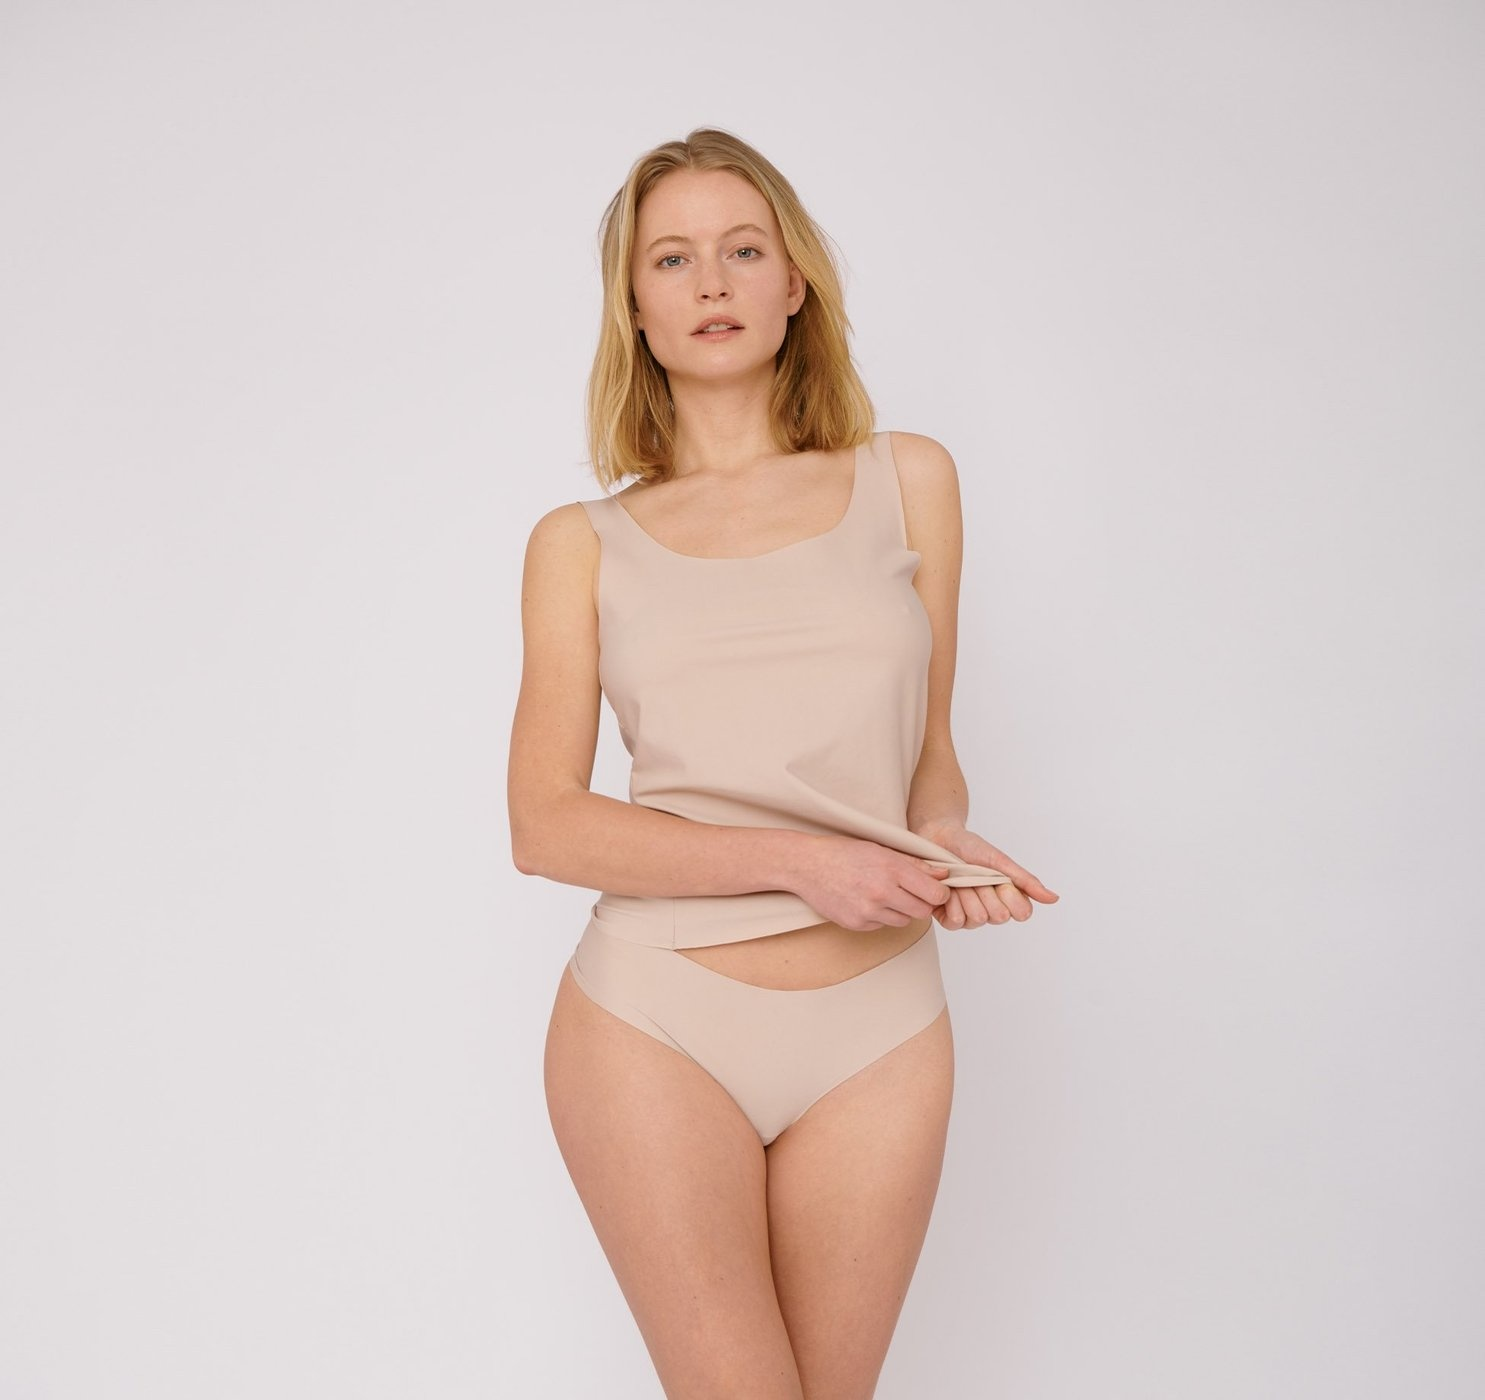 Organic Basics | Invisible Cheeky Thong 2-pack Rose Nude-1